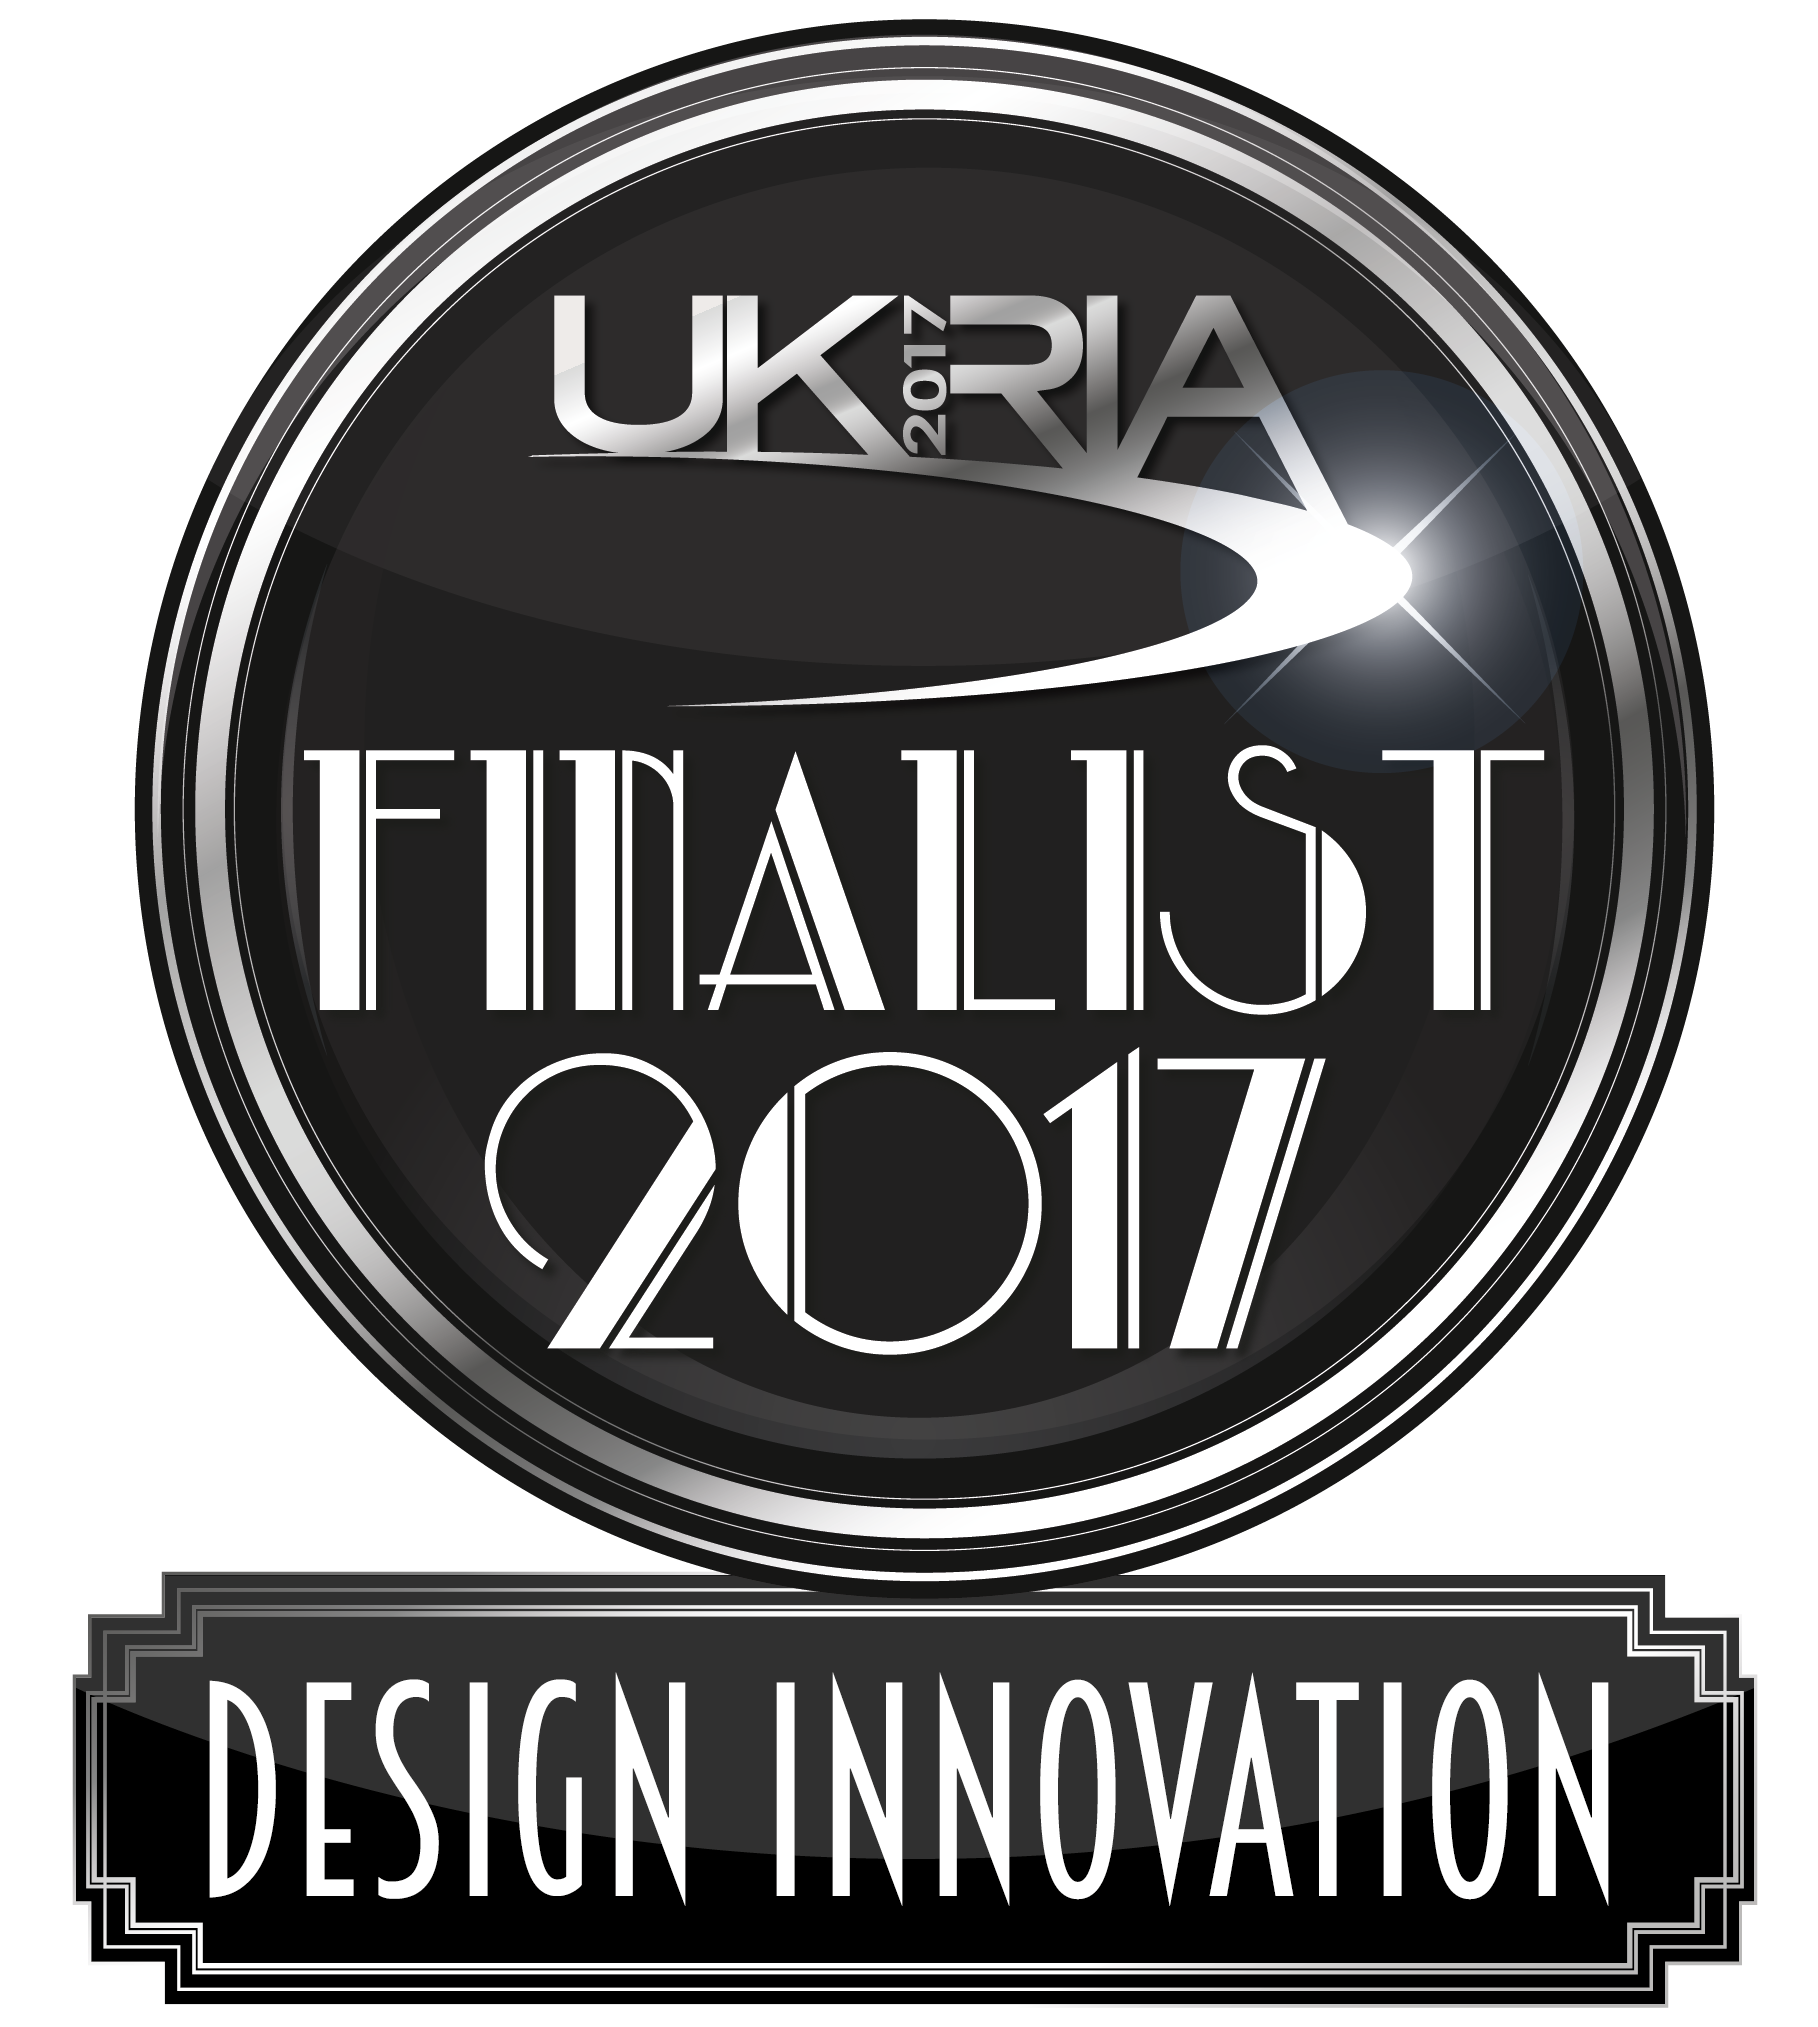 Design-innovation-award-wifi-spark-image